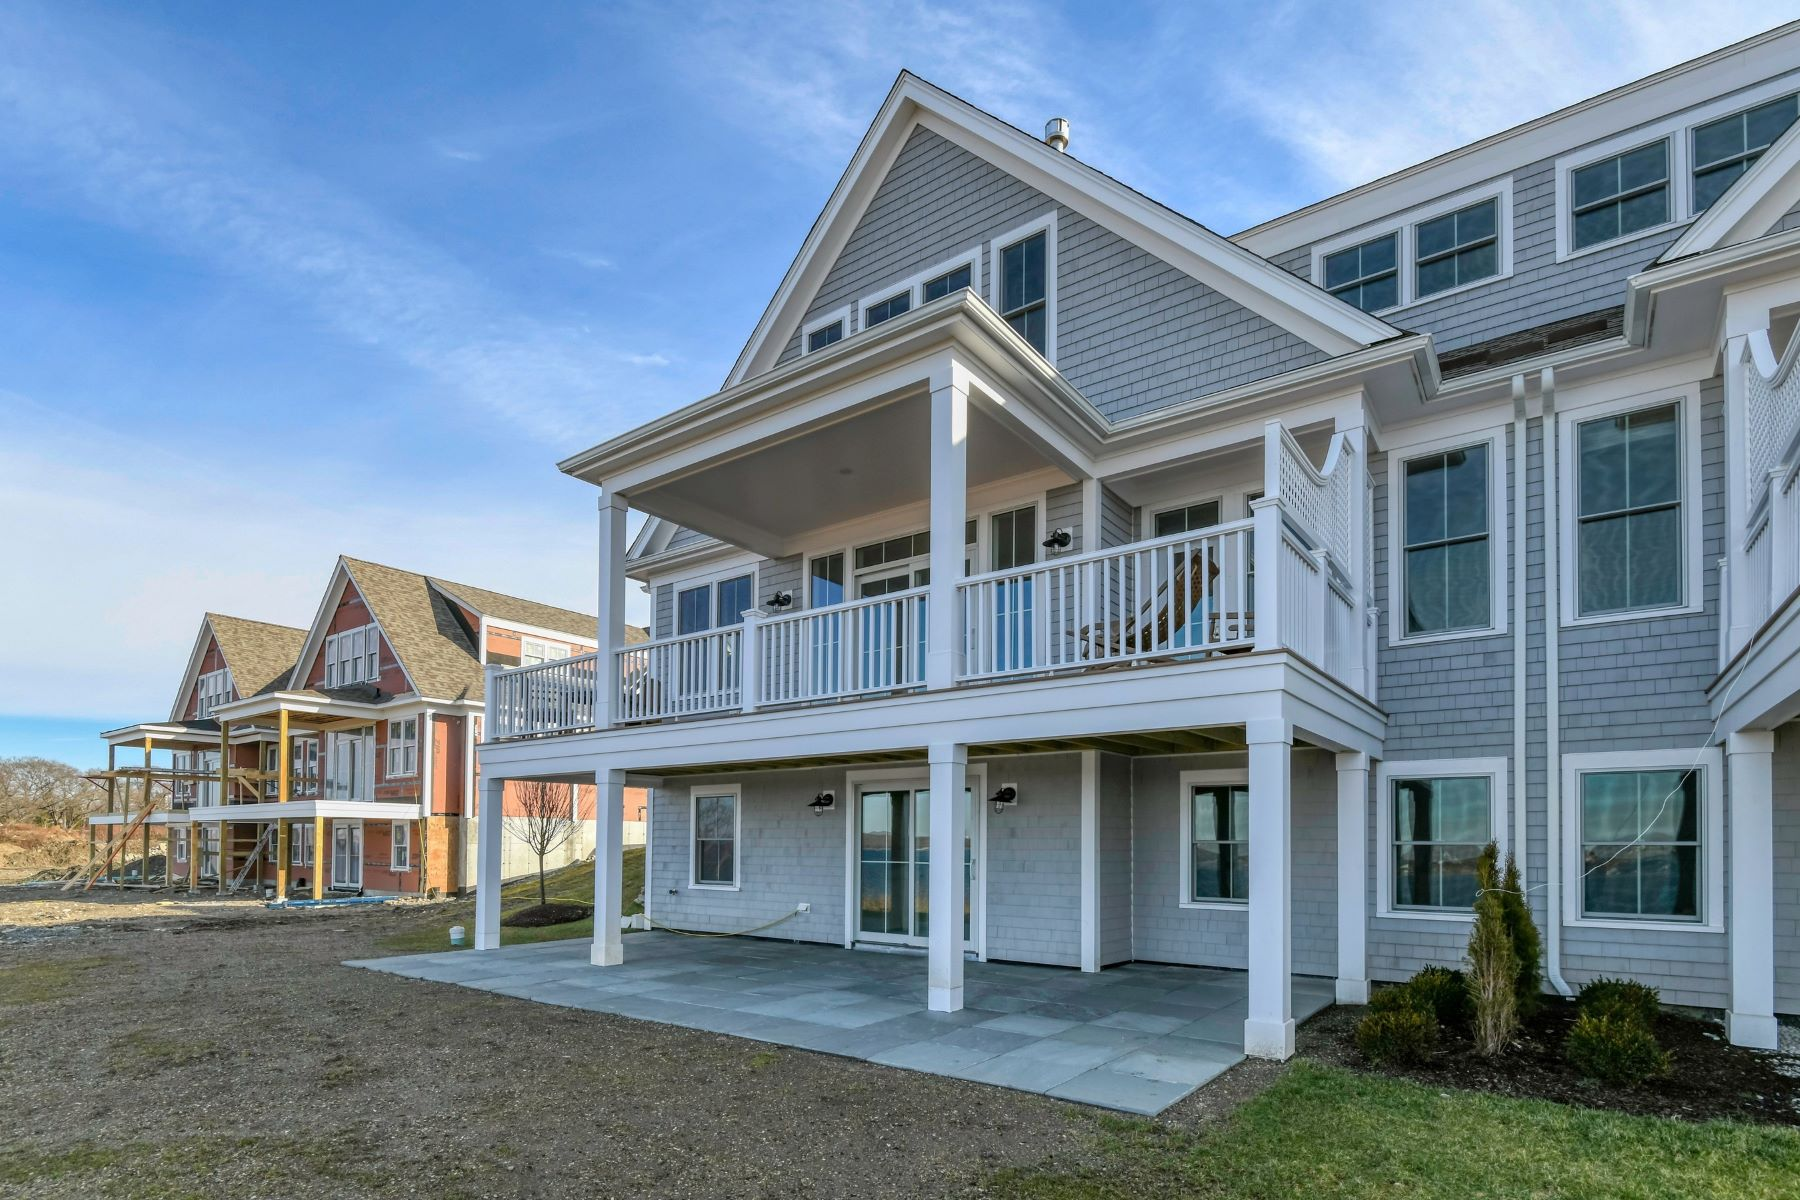 Additional photo for property listing at Luxury Condo at the Villages on Mount Hope Bay 139 Leeshore Lane Tiverton, Rhode Island 02878 United States